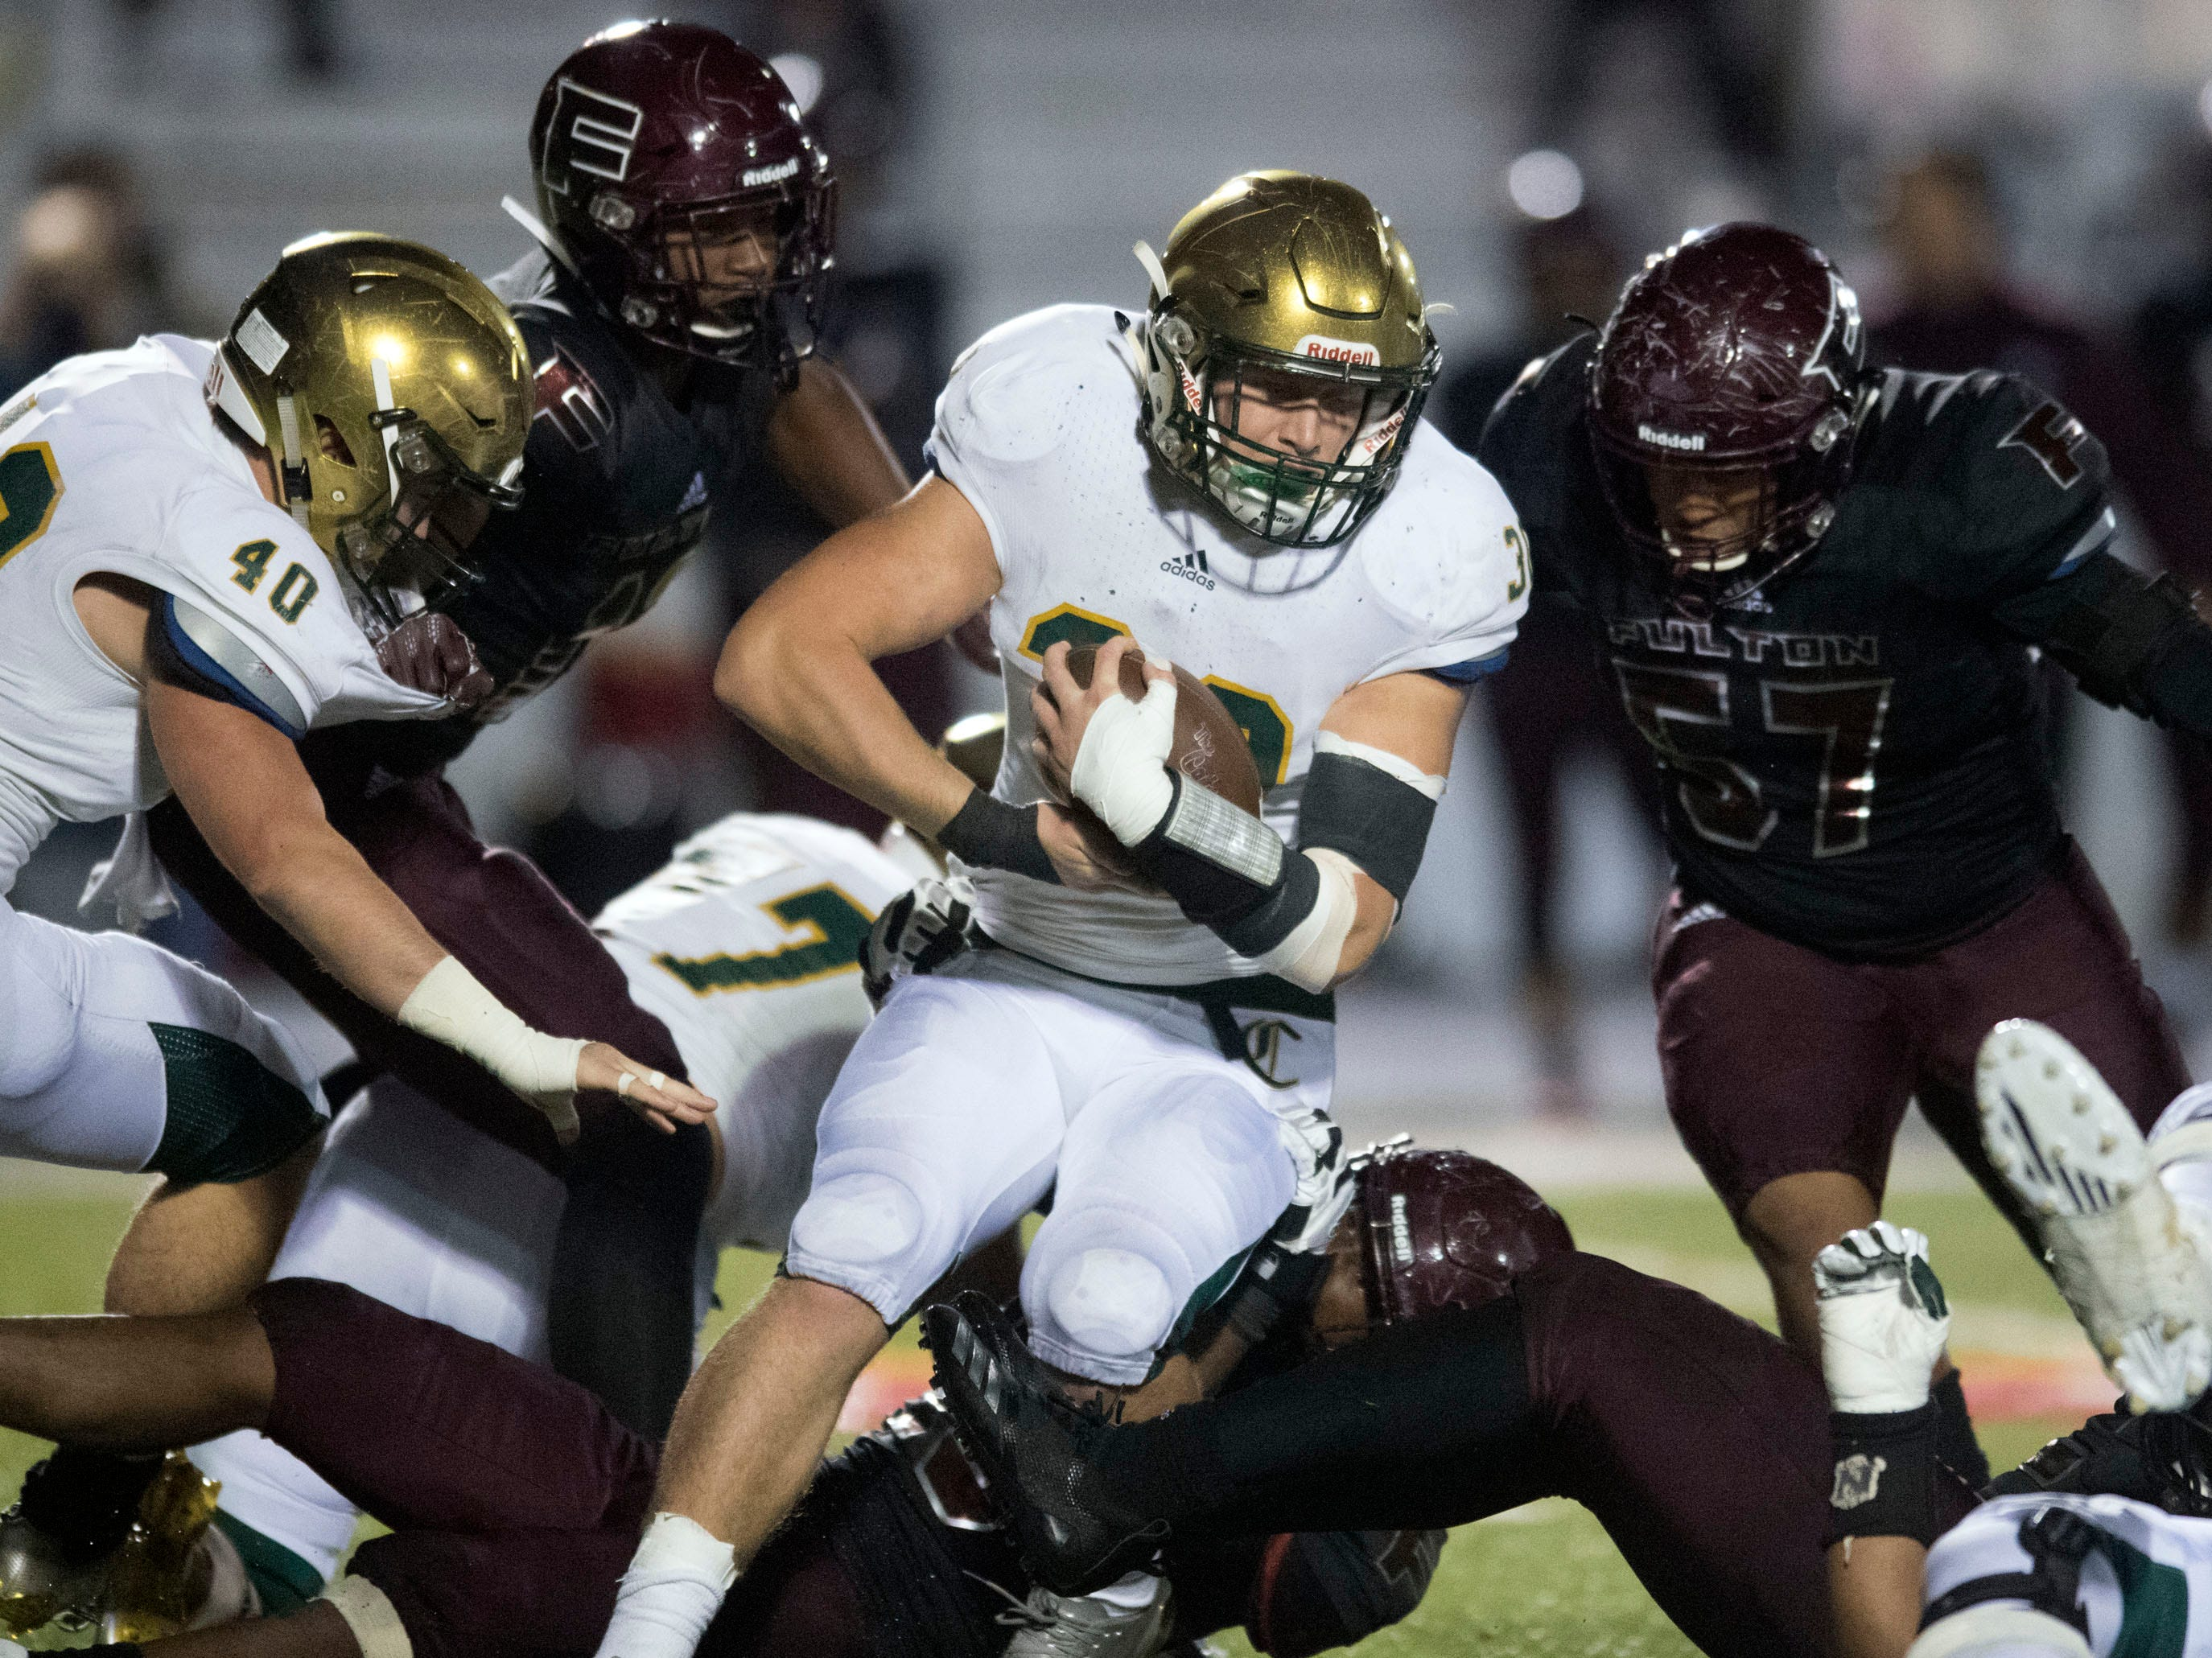 Knoxville Catholic's Cody Duncan (30) on a run against Fulton. Knoxville Catholic beat Fulton, 28-25 in the second round of the Class 5A playoffs on Friday, November 9, 2018.